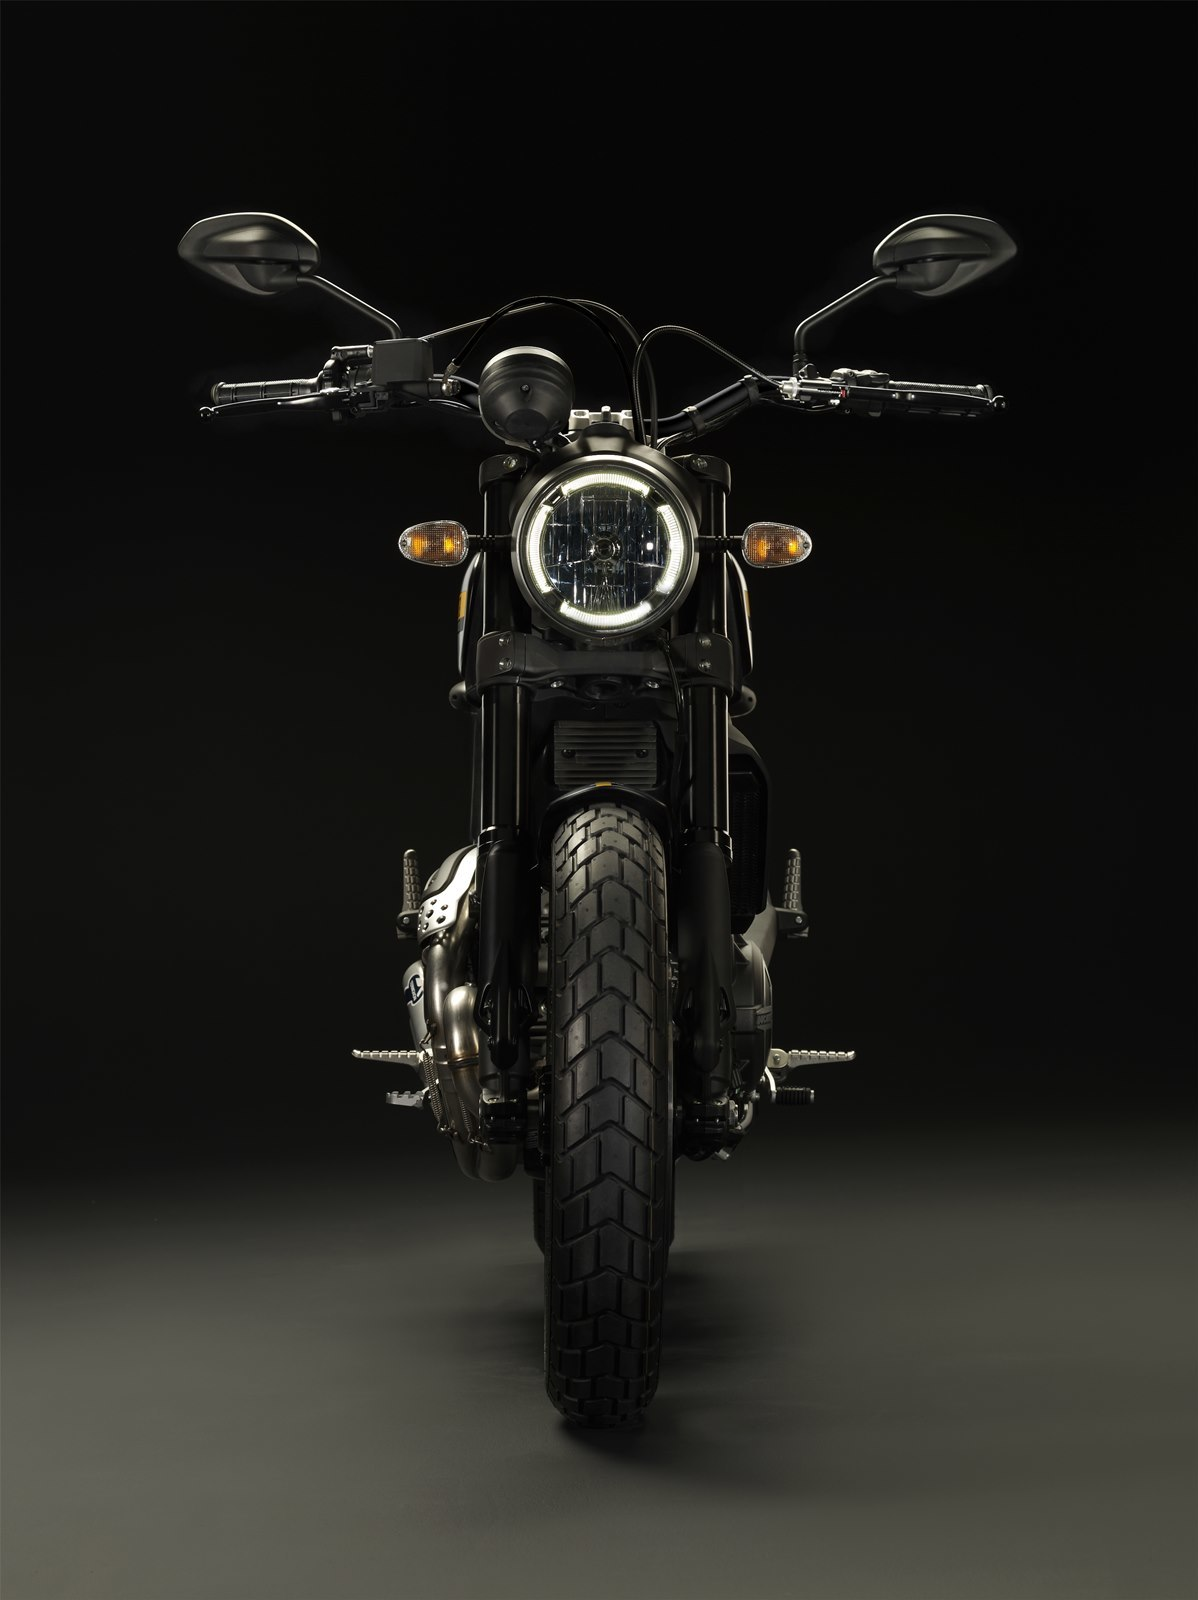 Foto de Ducati Scrambler Full Throttle (8/11)